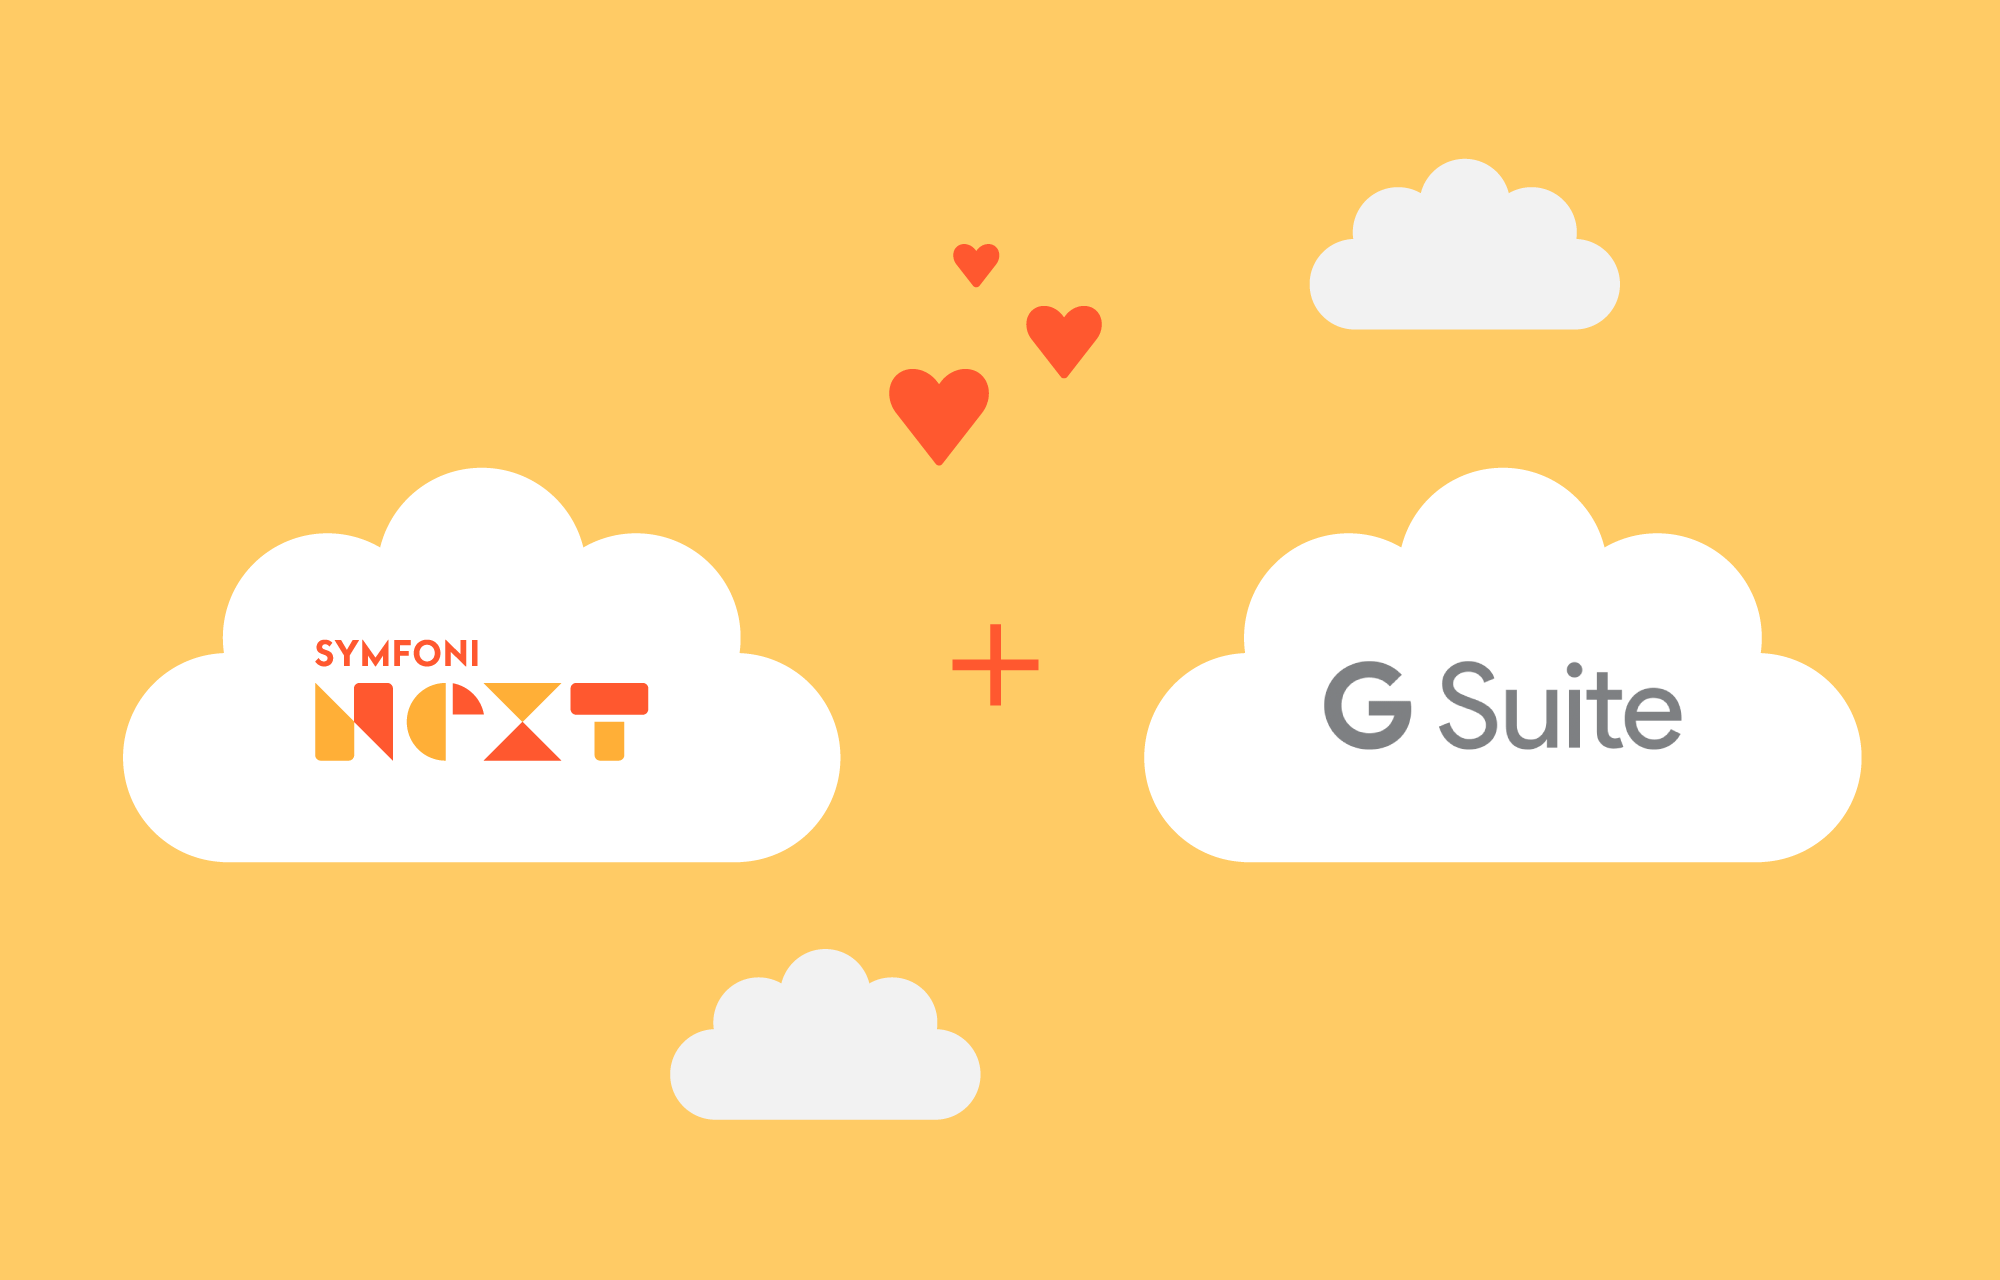 Symfoni Next logo and G Suite logo with hearts between them.